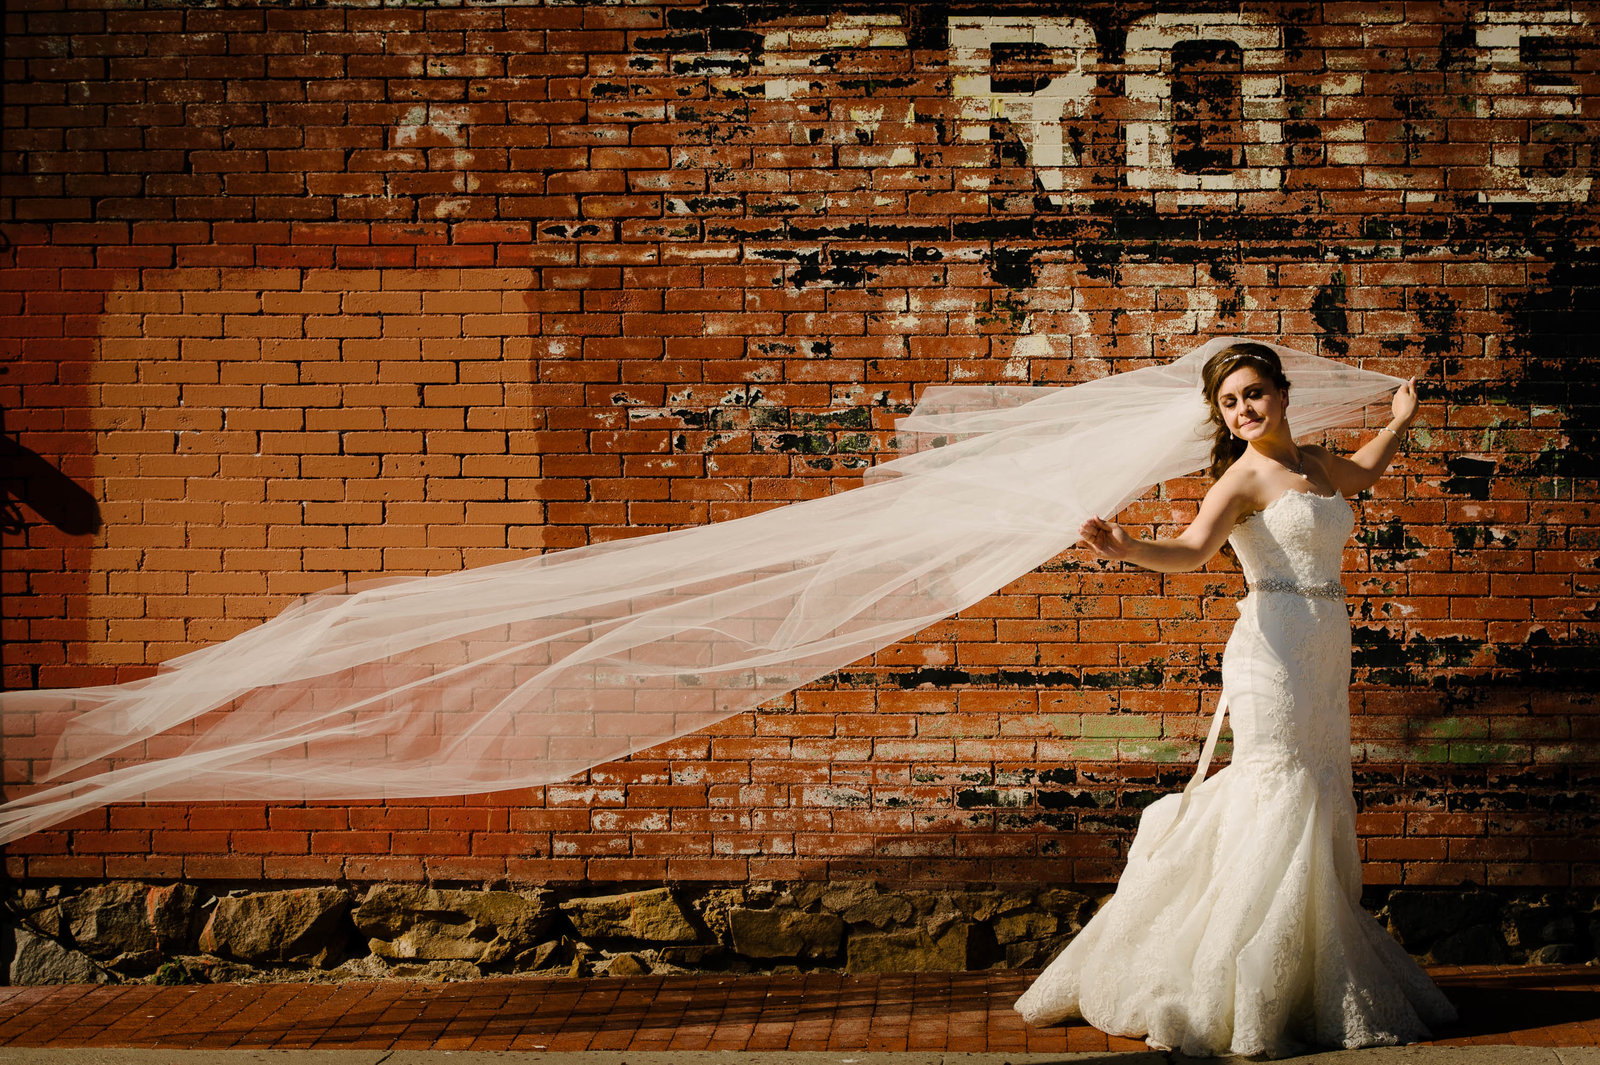 241-El-paso-wedding-photographer-RaLo_0431